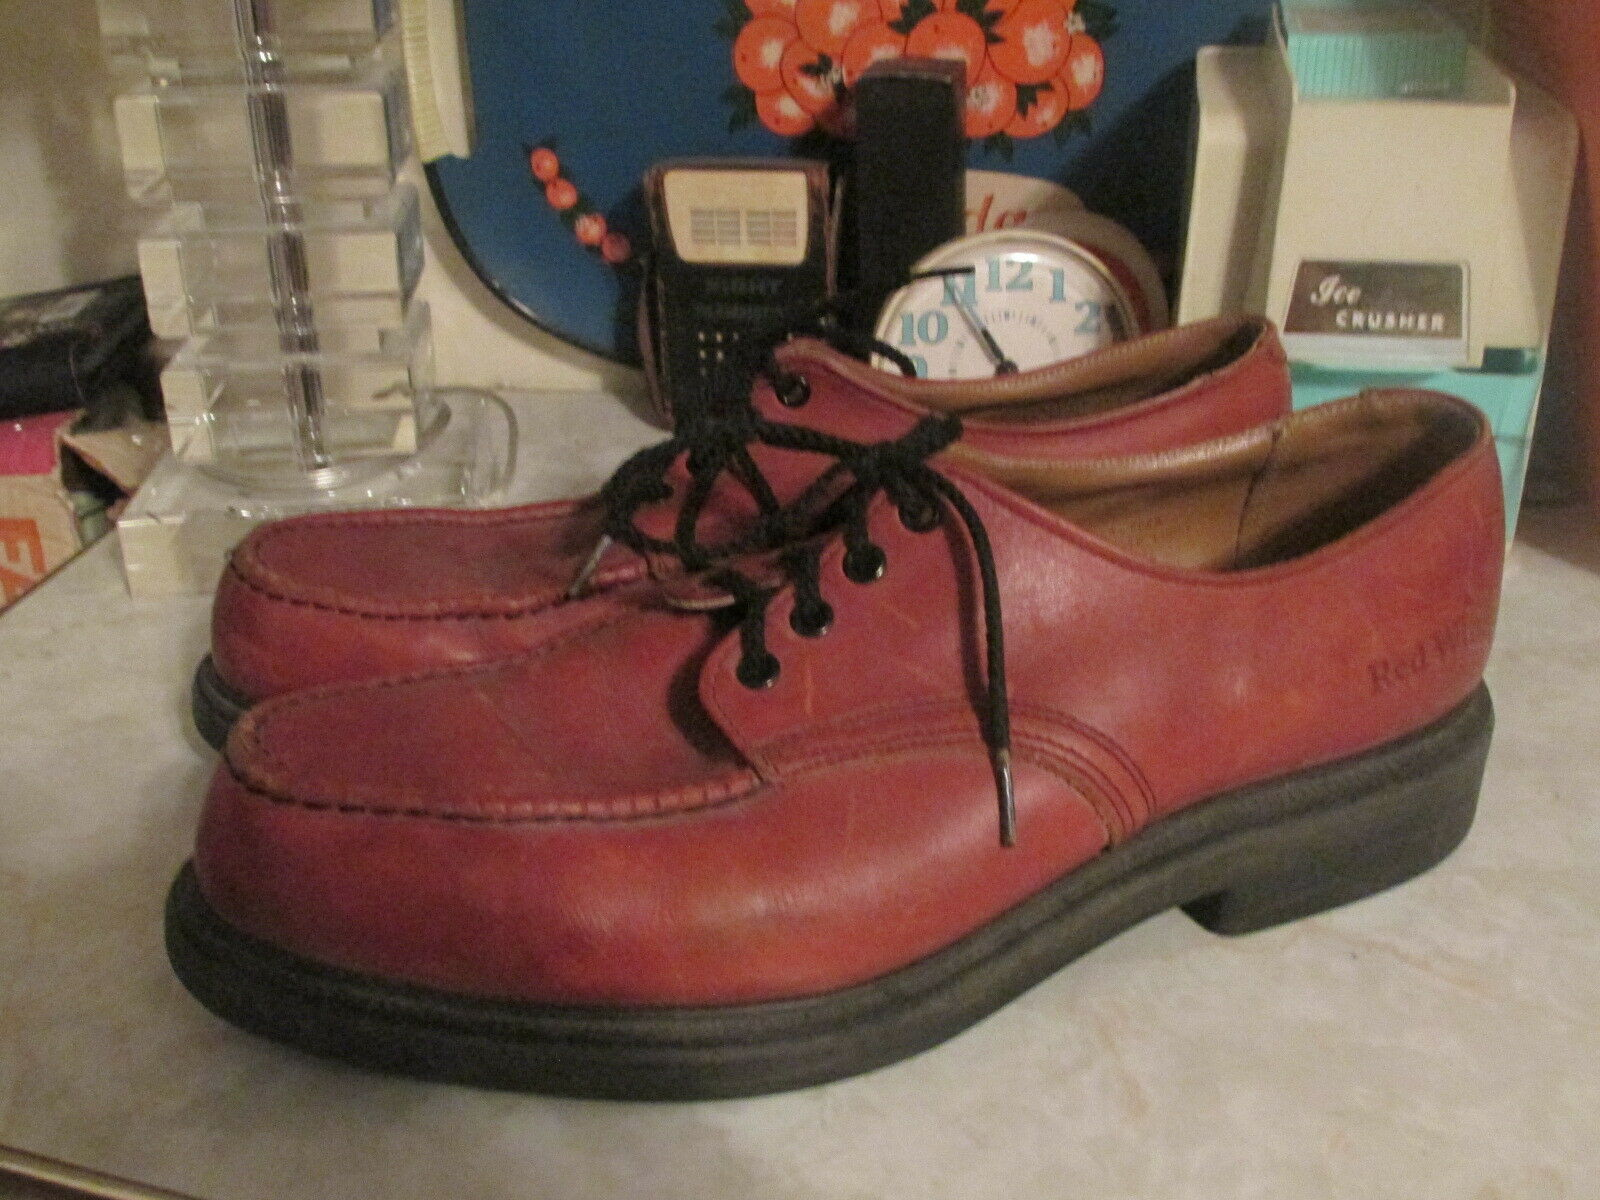 VTG Red Wing Oxford shoes  Leather Men's USA Made 13 D